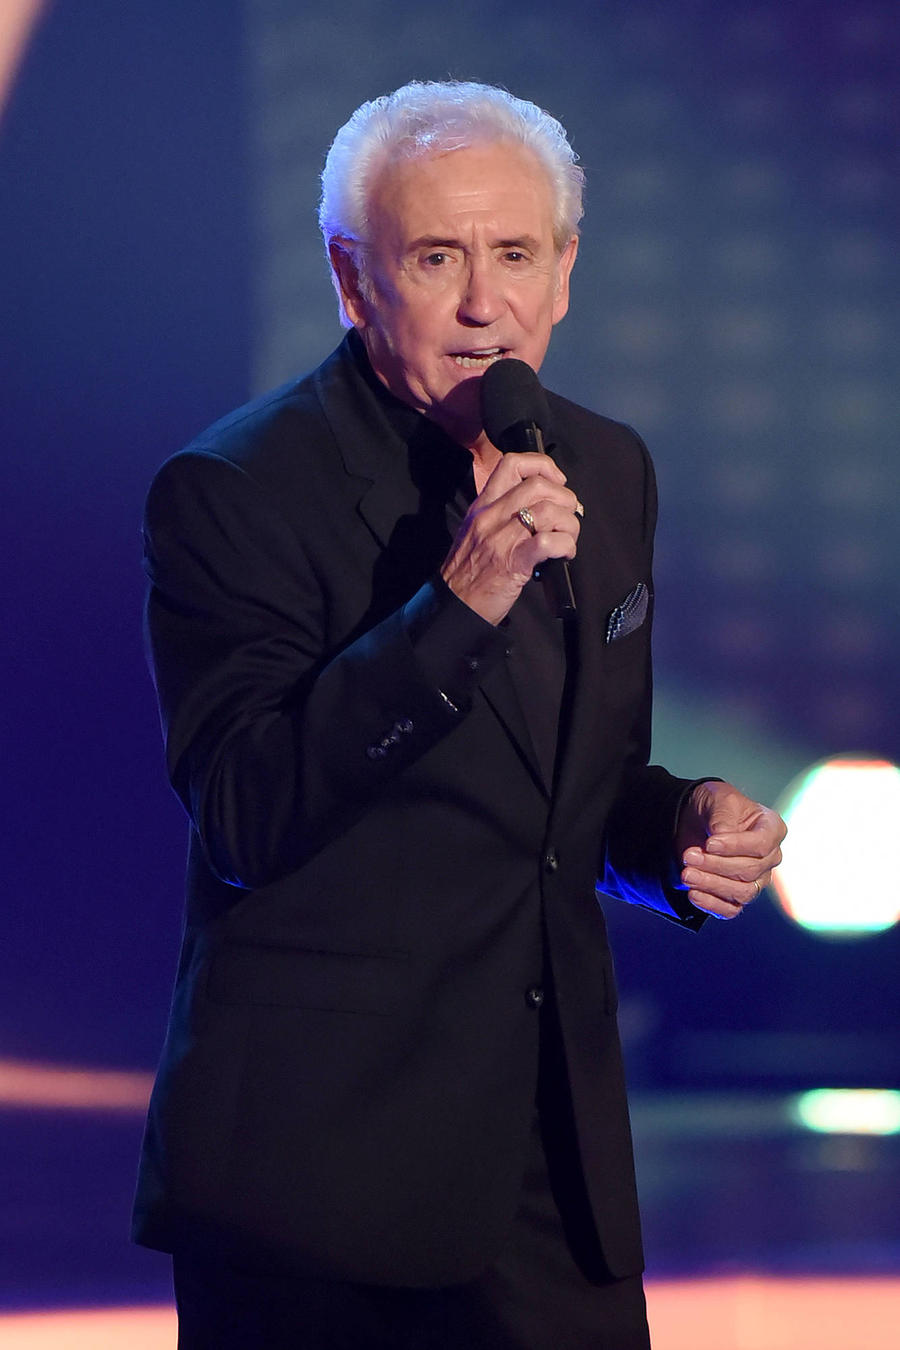 Tony Christie Left Shaken After Tour Bus Gang Attack